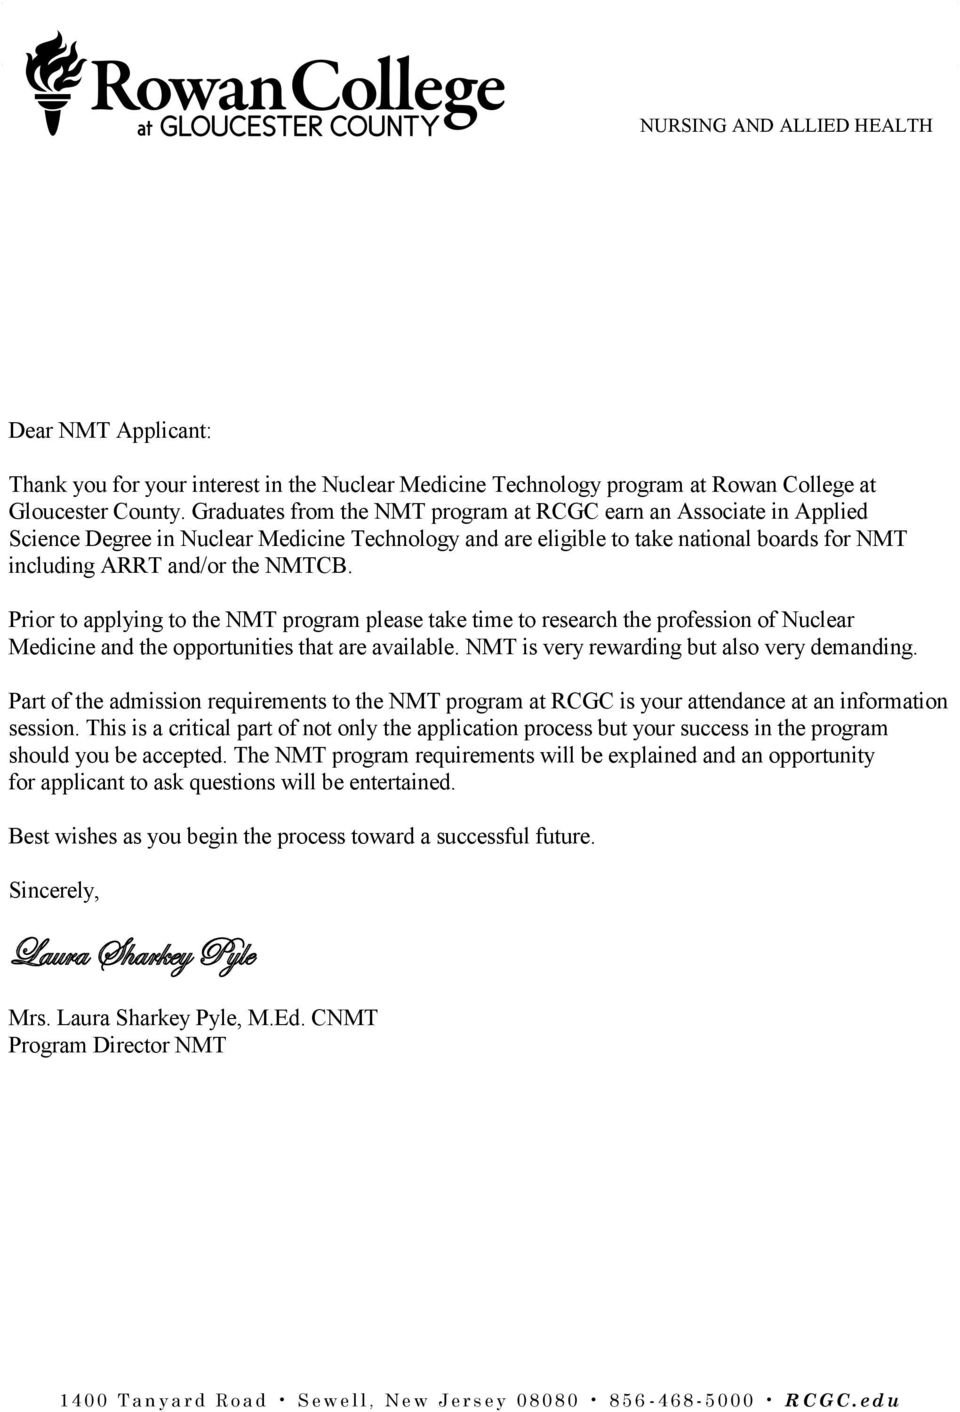 Prior to applying to the NMT program please take time to research the profession of Nuclear Medicine and the opportunities that are available. NMT is very rewarding but also very demanding.